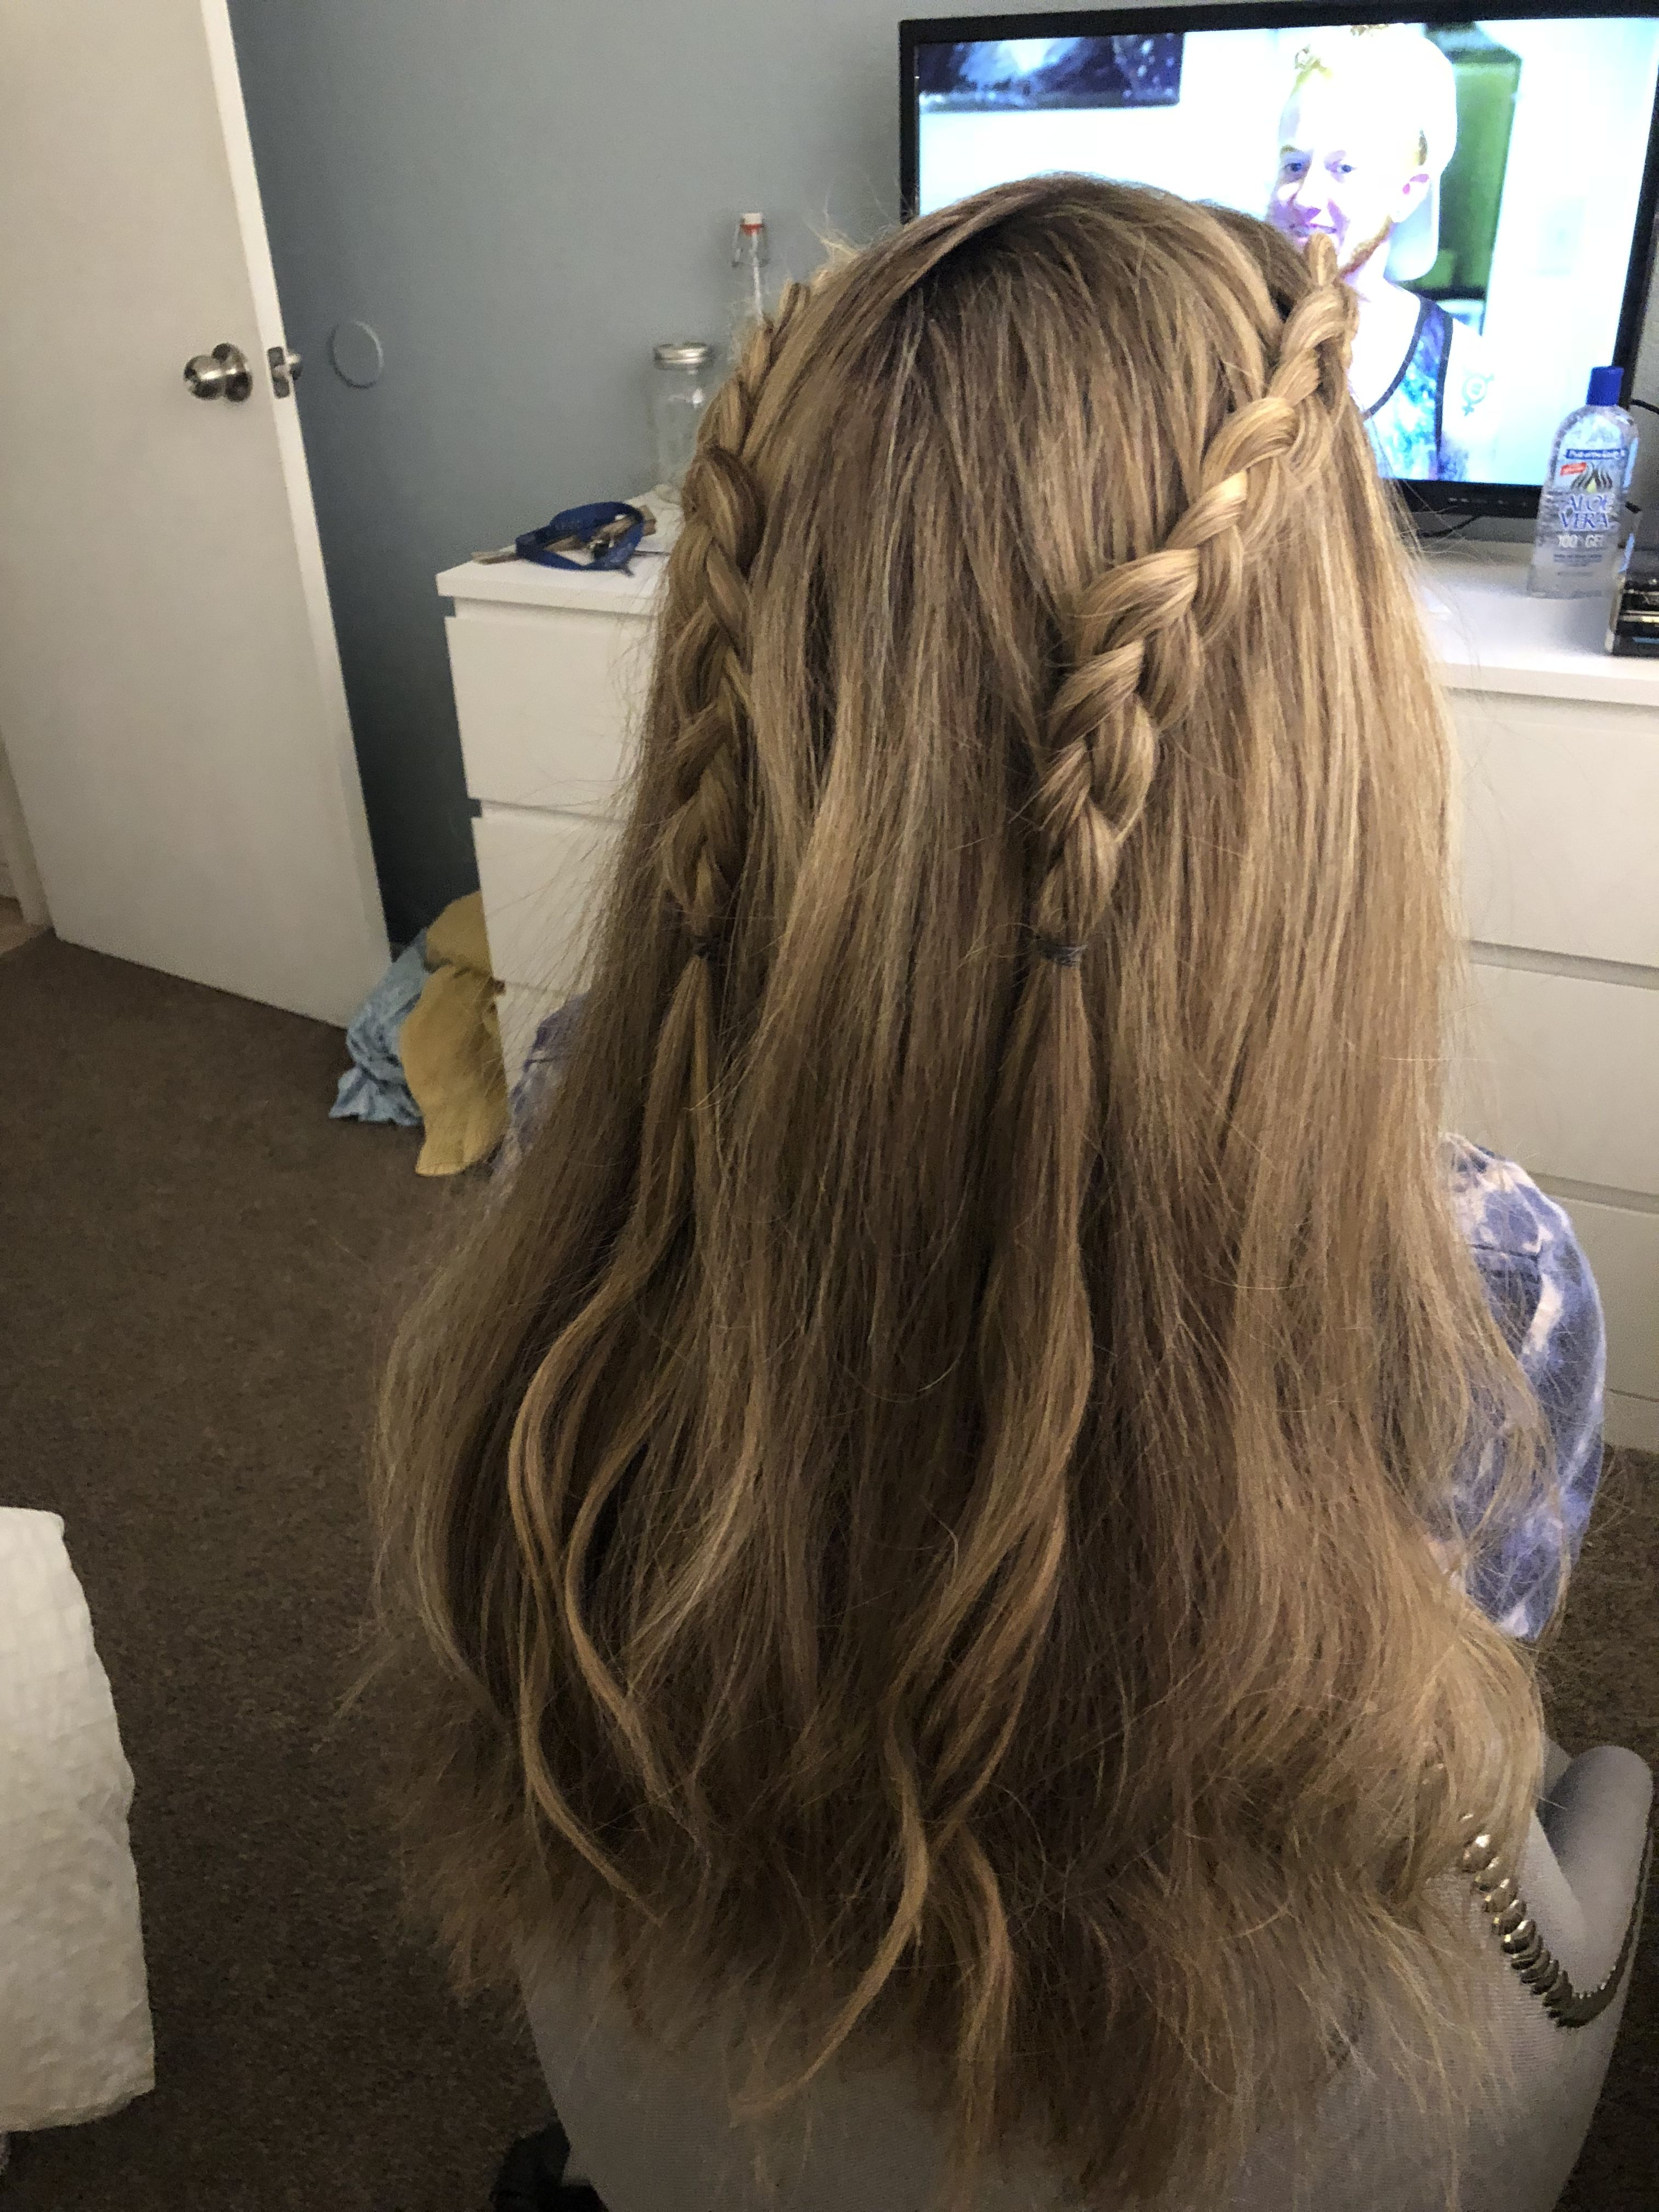 Make two side braids for a festive fun playful style Hair in